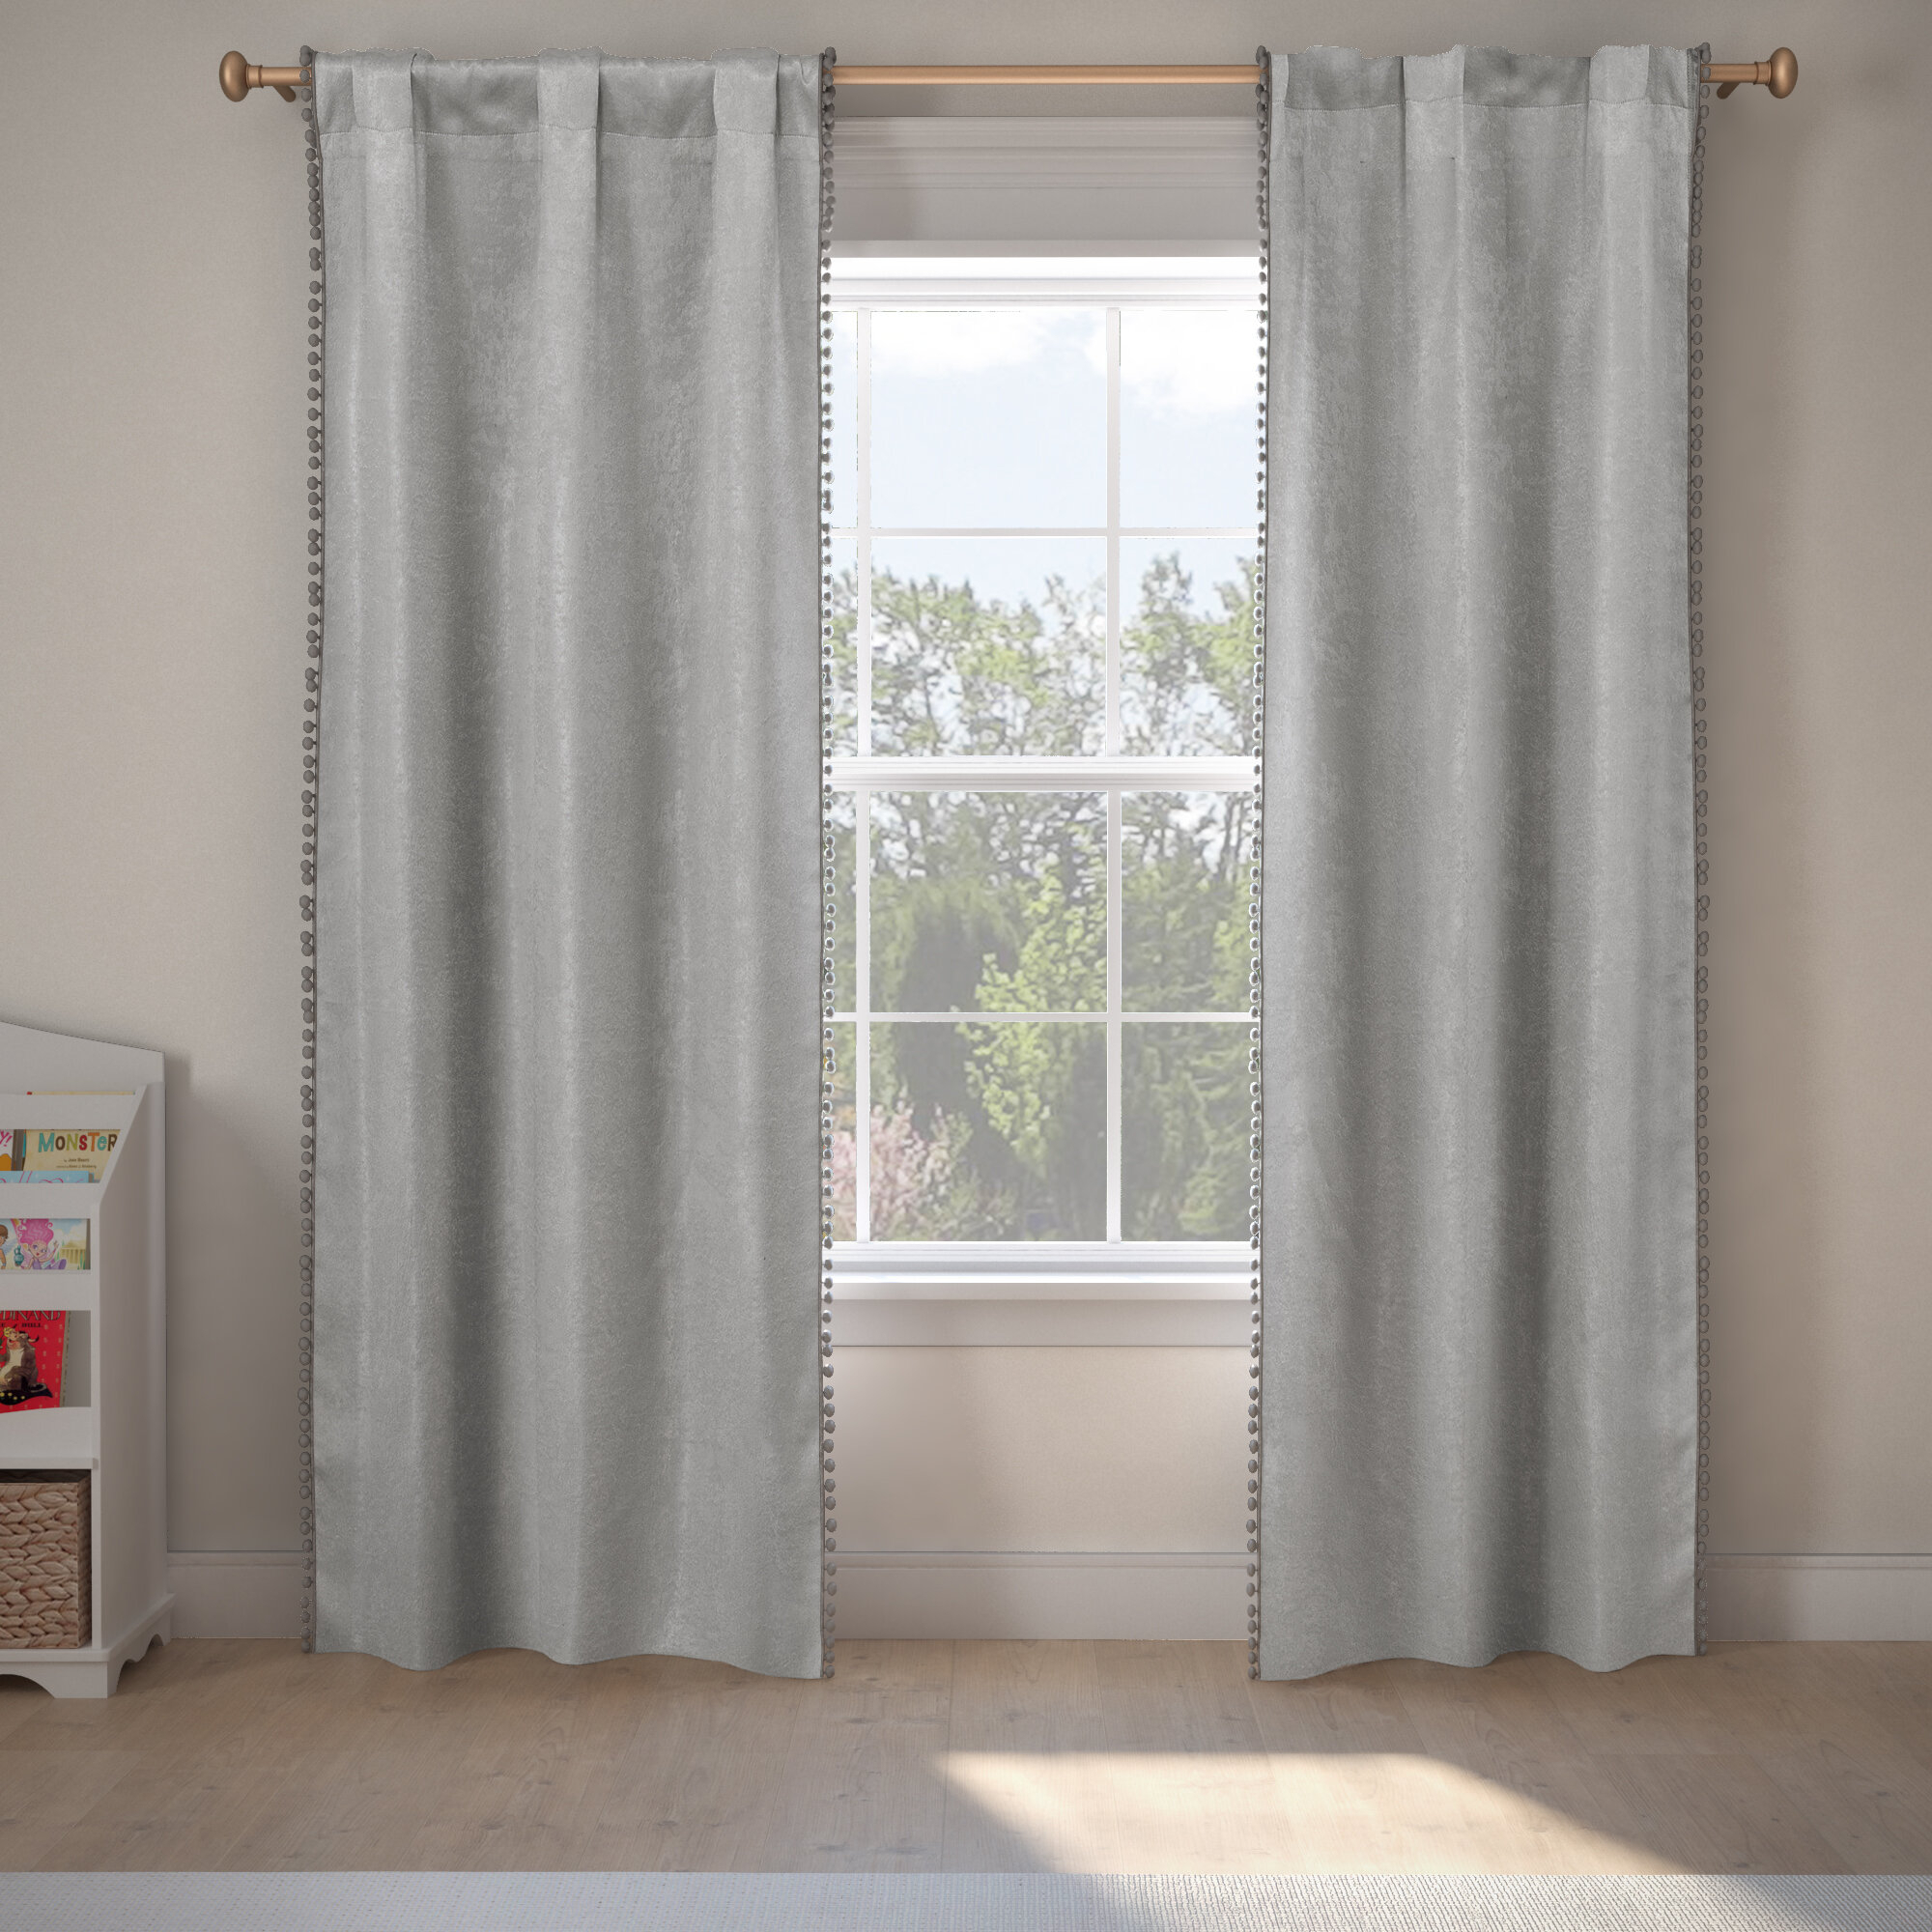 Albrecht Pom Poms Solid Blackout Thermal Rod Pocket Panel Pair Intended For Thermal Rod Pocket Blackout Curtain Panel Pairs (View 7 of 30)